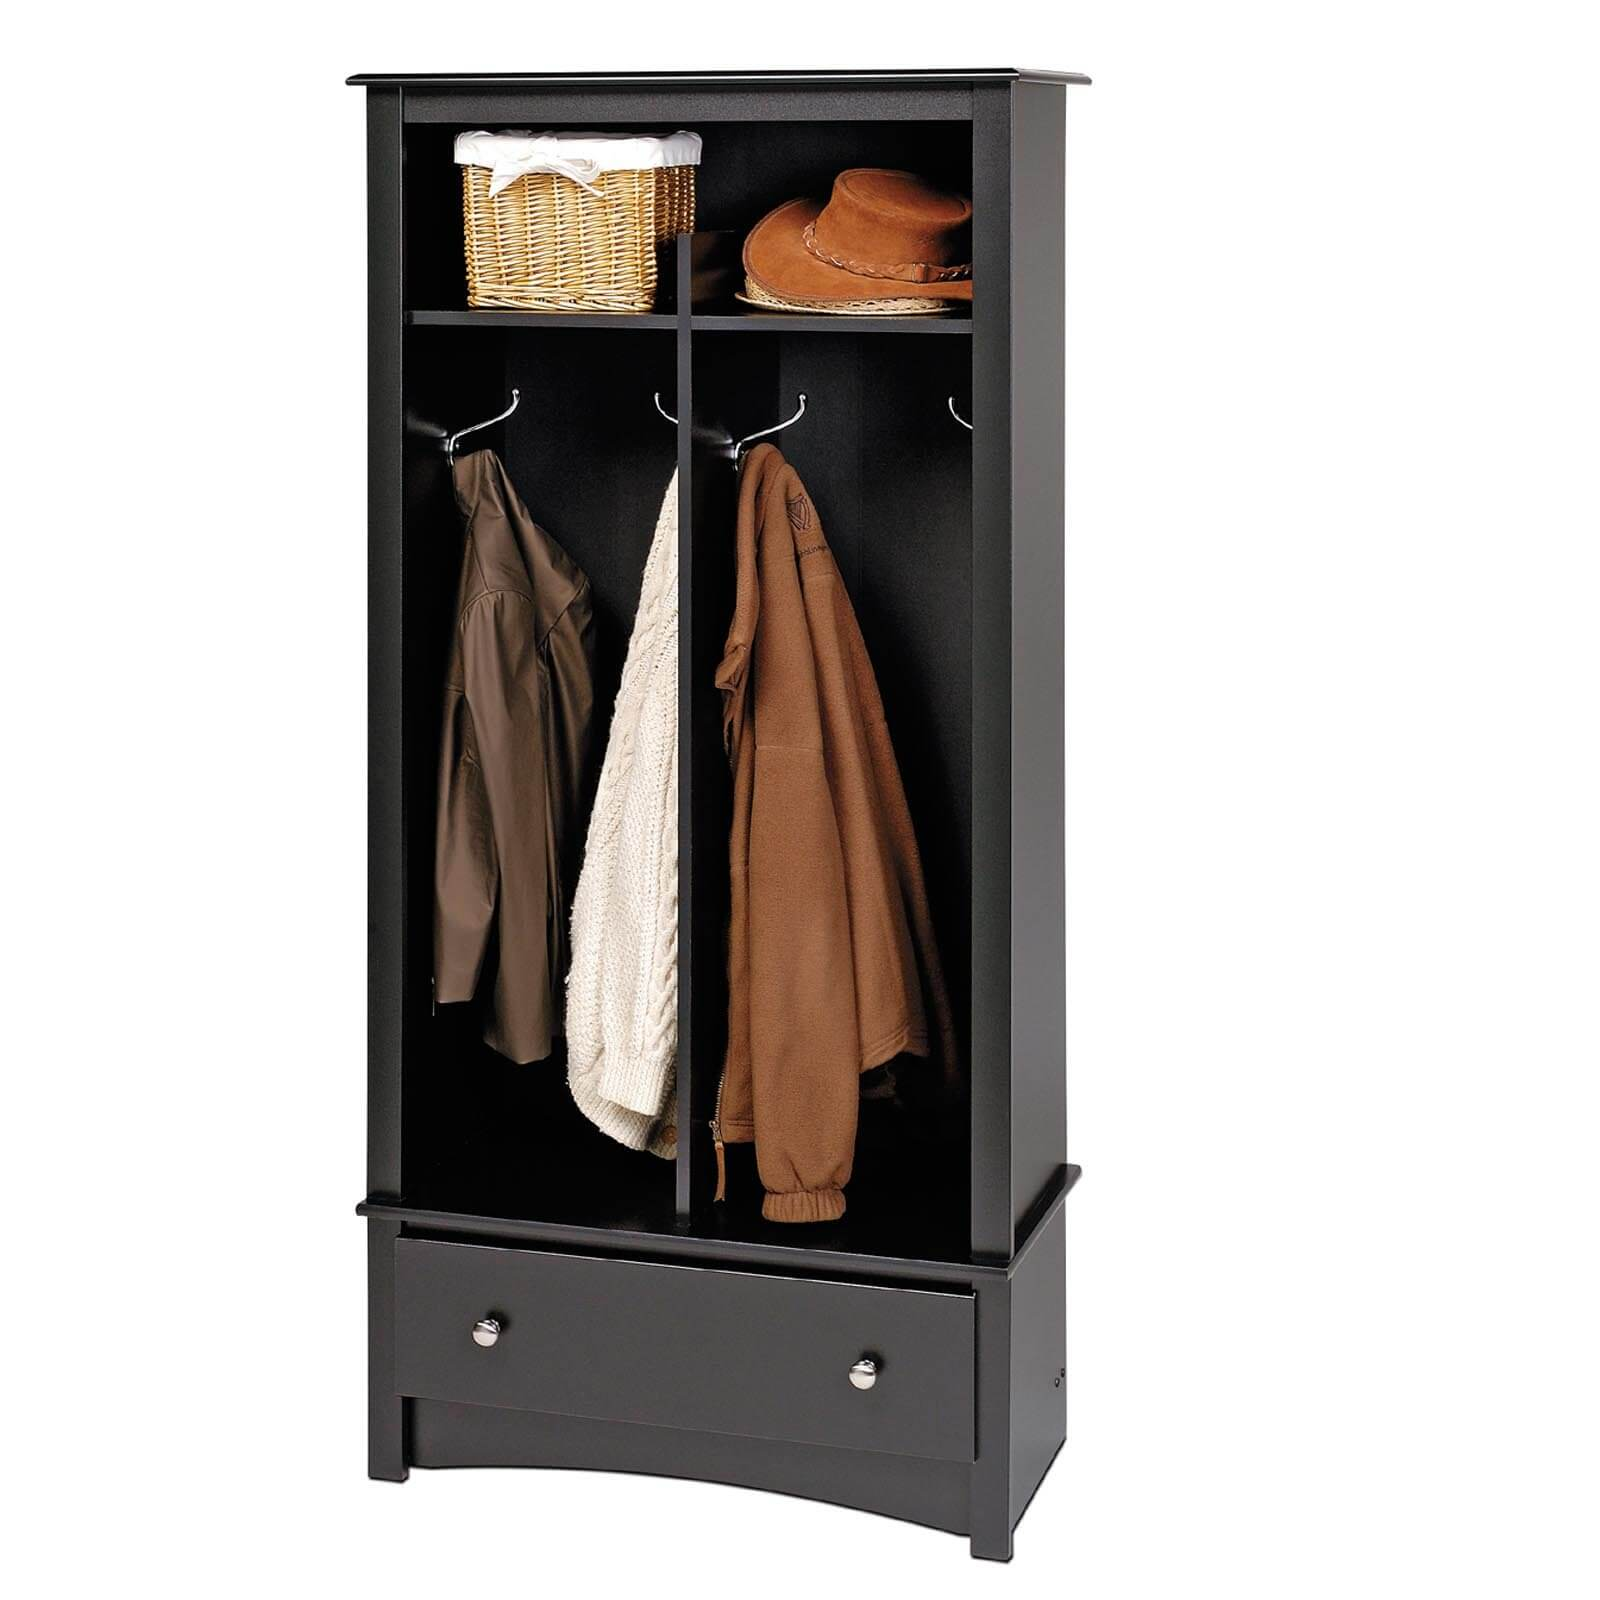 entryway systems furniture. entryway systems furniture i love this charcoal grey foyermudroom storage unit itu0027s beautiful and would